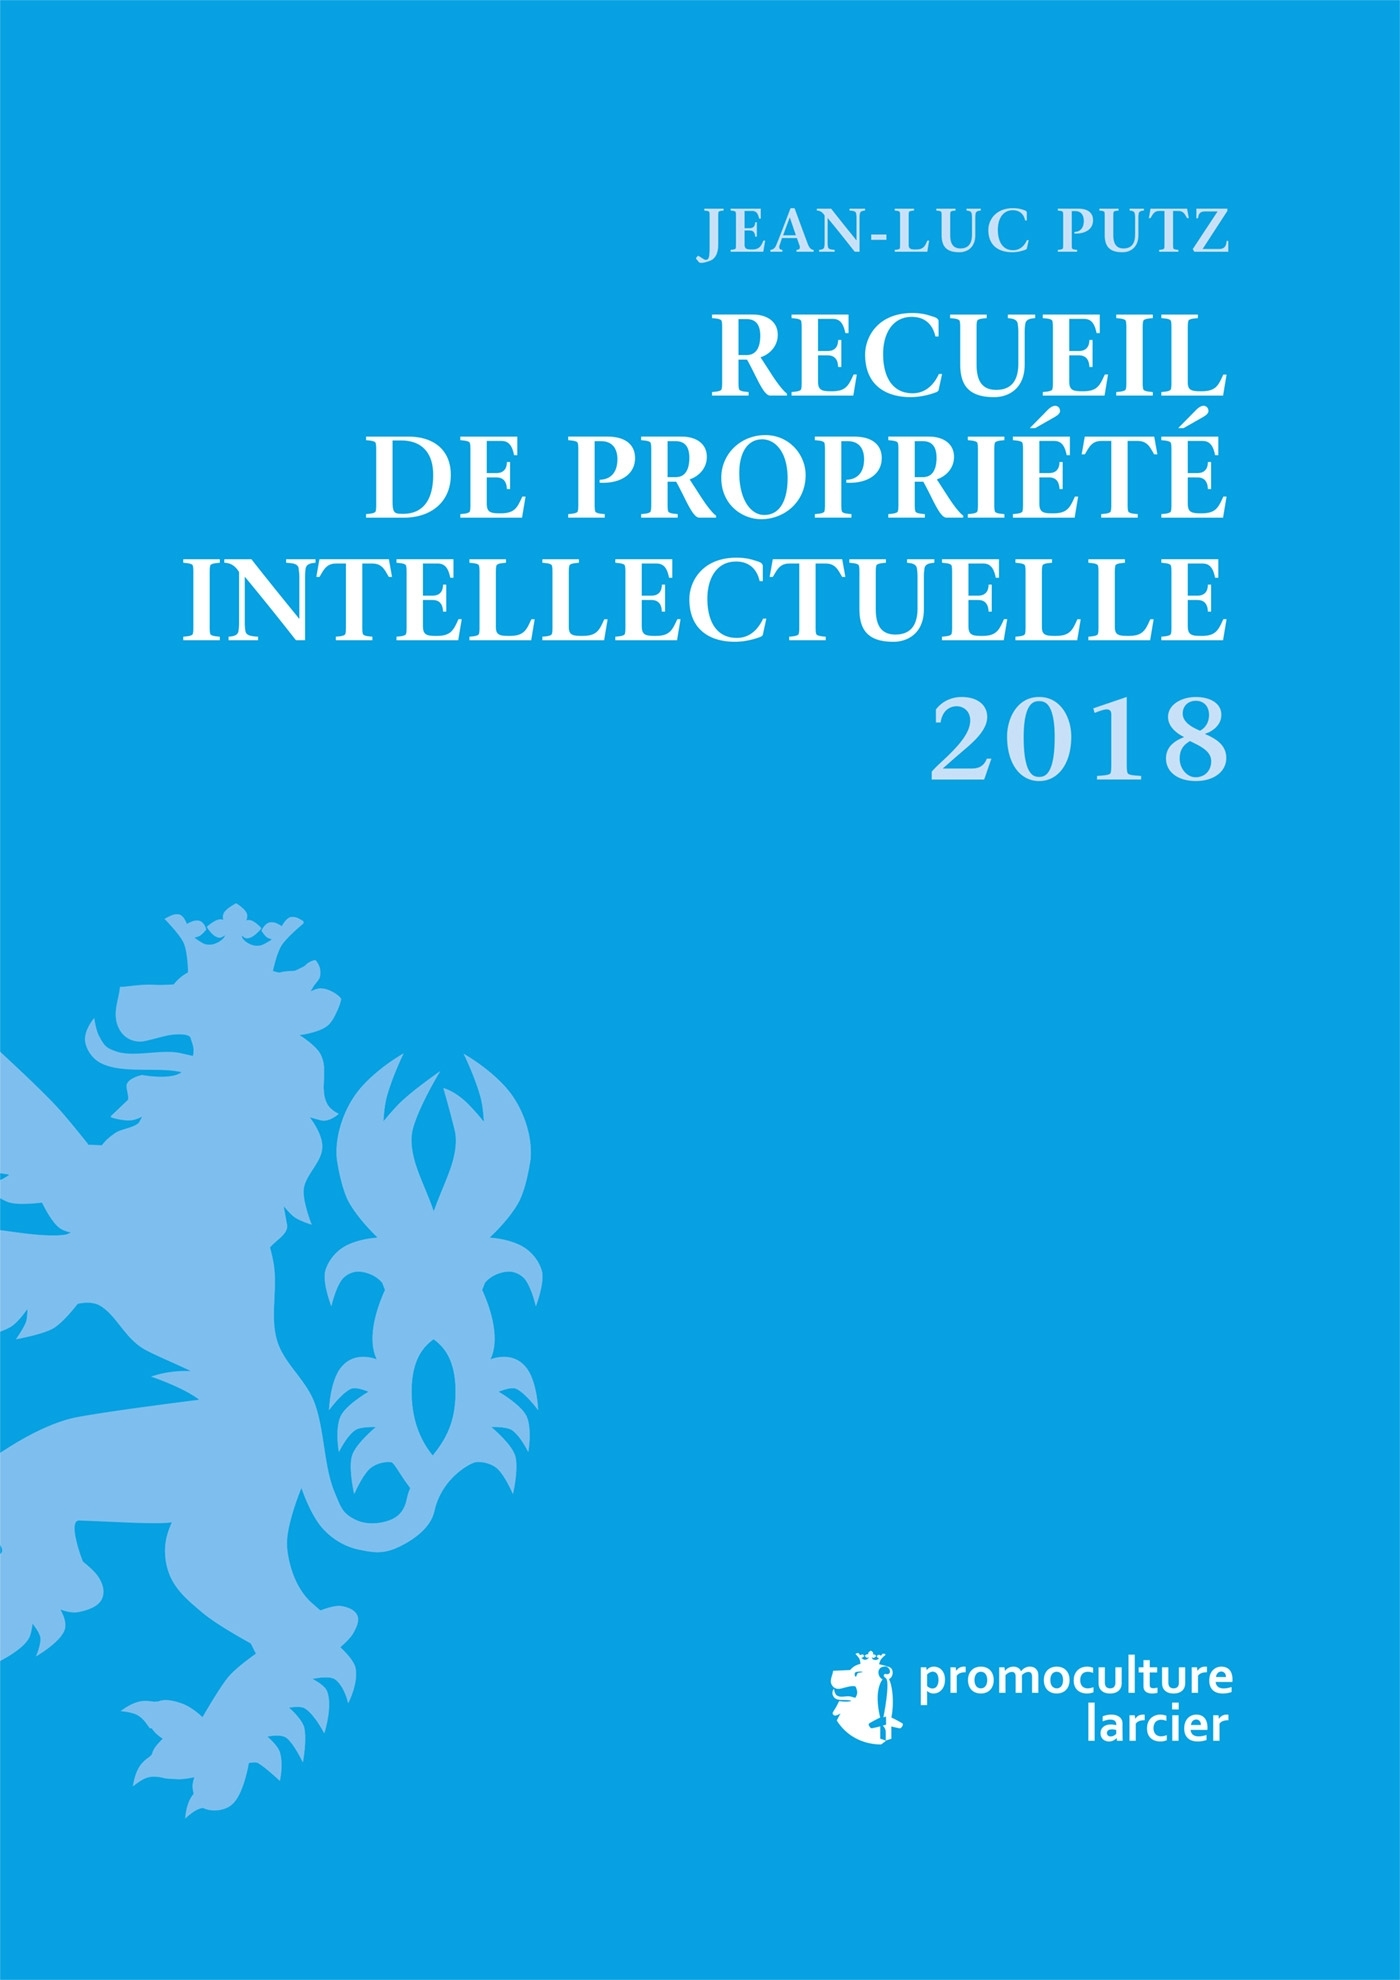 RECUEIL DE PROPRIETE INTELLECTUELLE - 2018